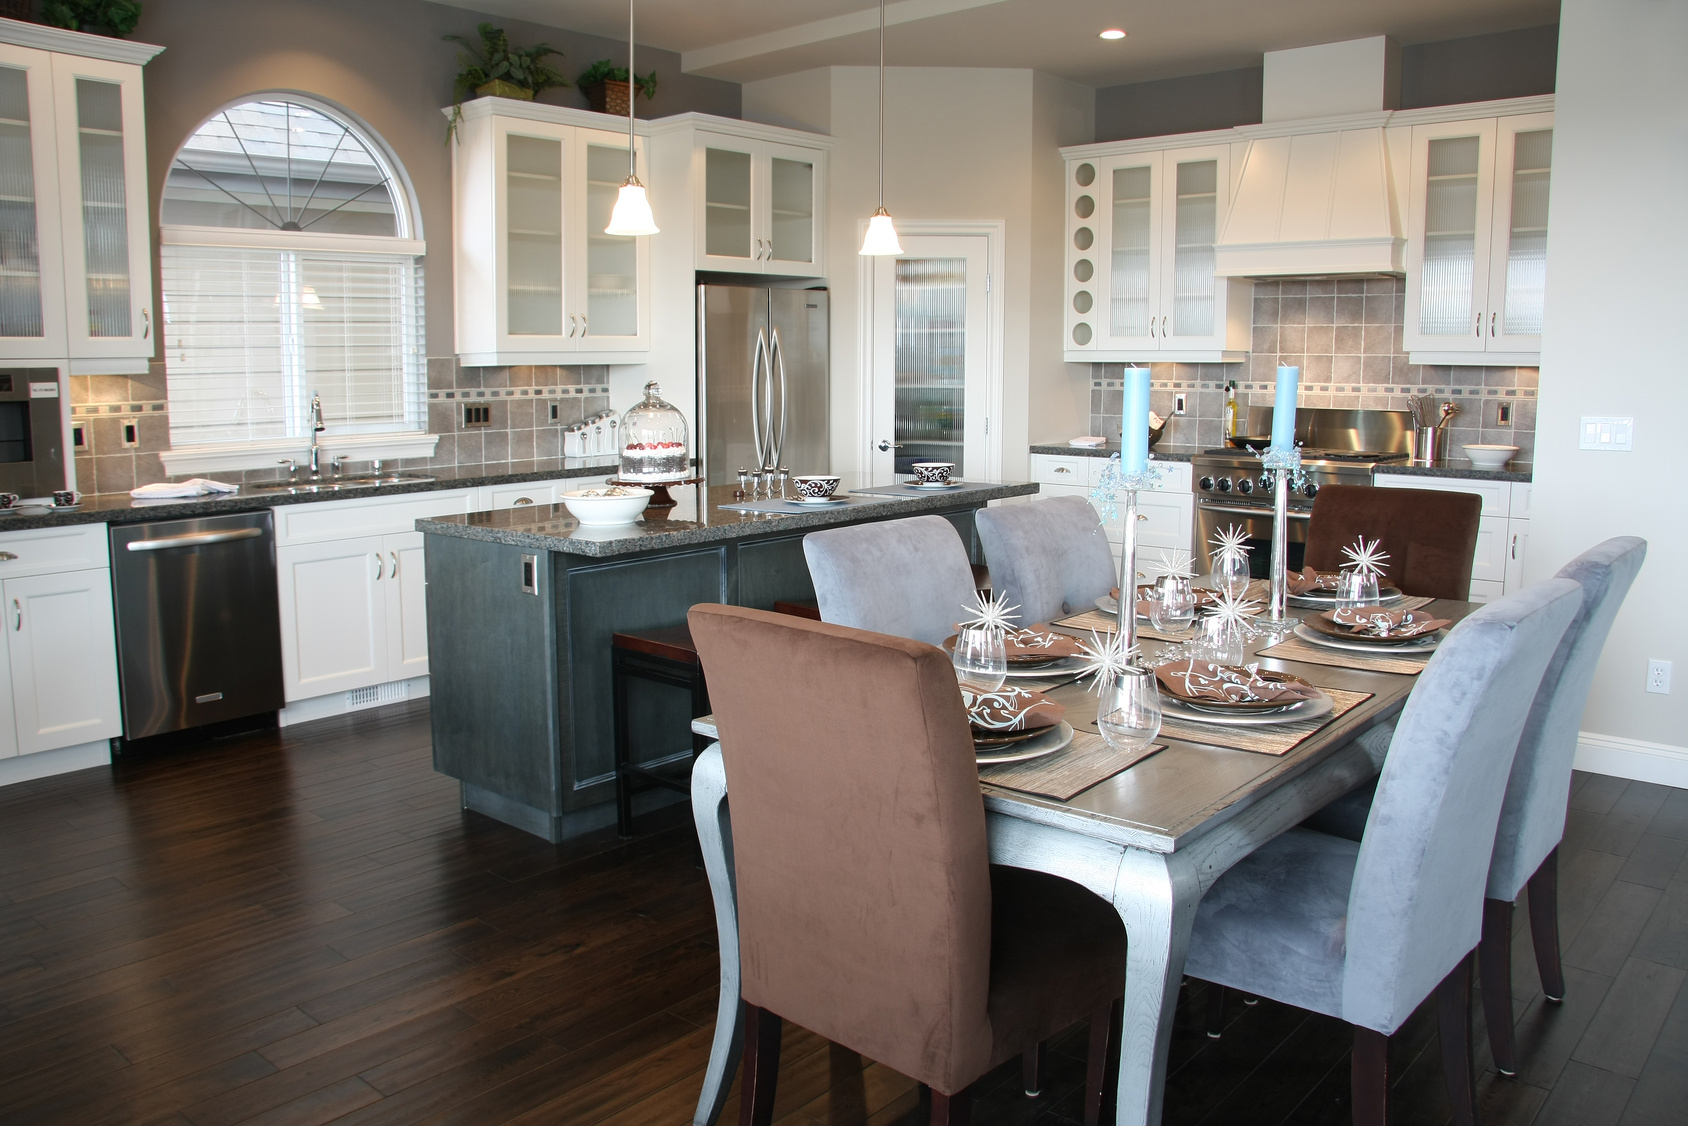 Kitchen Remodeling Kansas City Kc Custom Cabinets Quality Custom Cabinetry In Kansas City